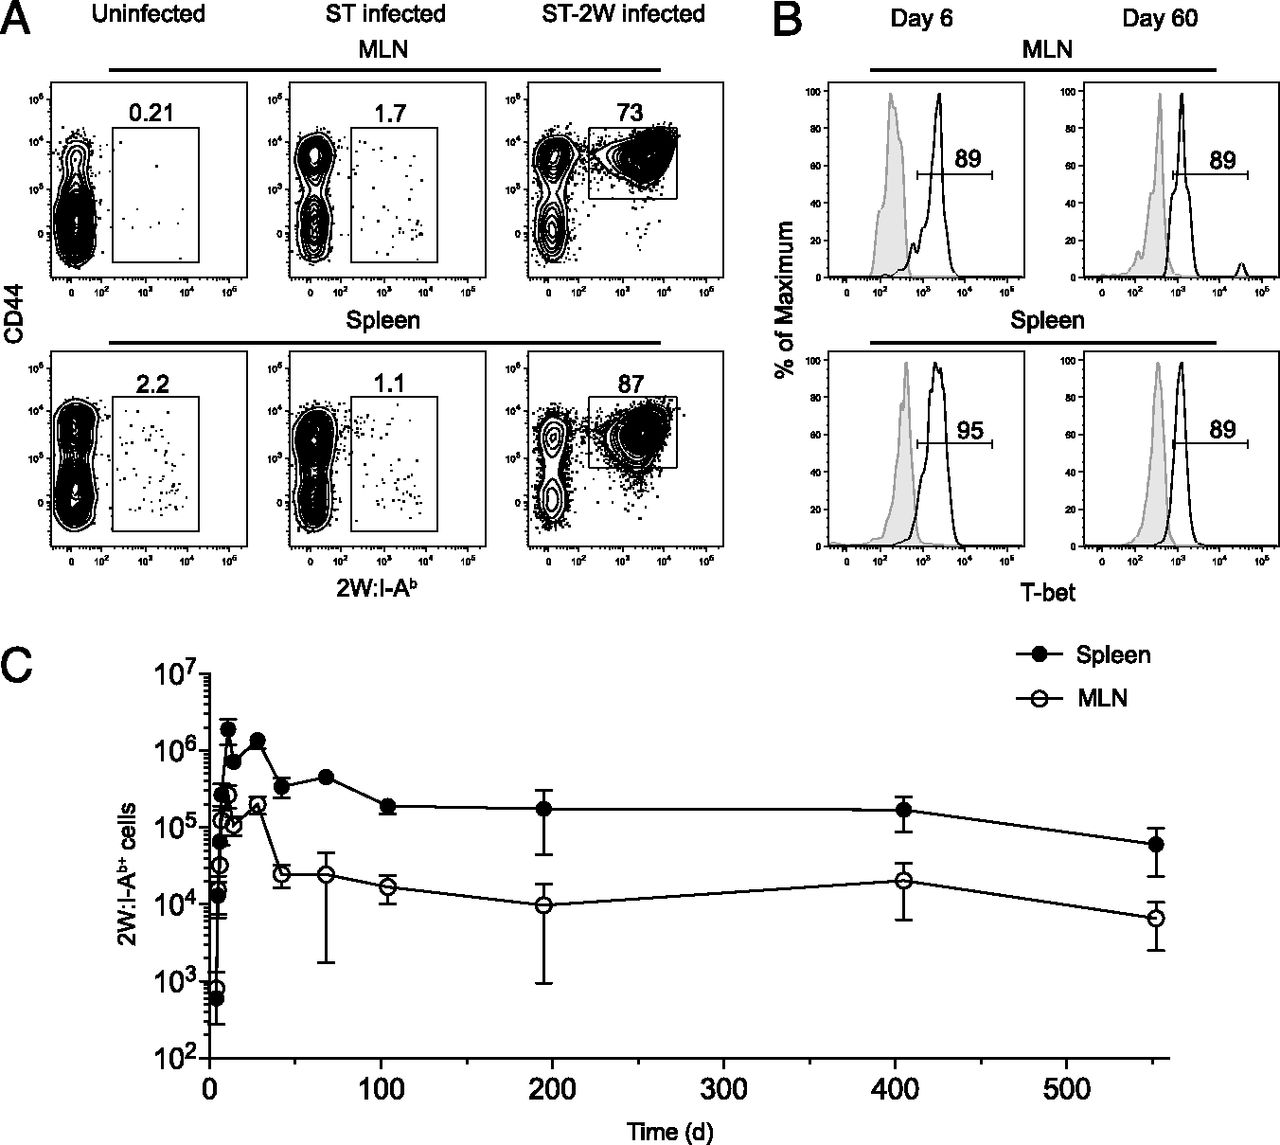 CD4+ T Cell Persistence and Function after Infection Are